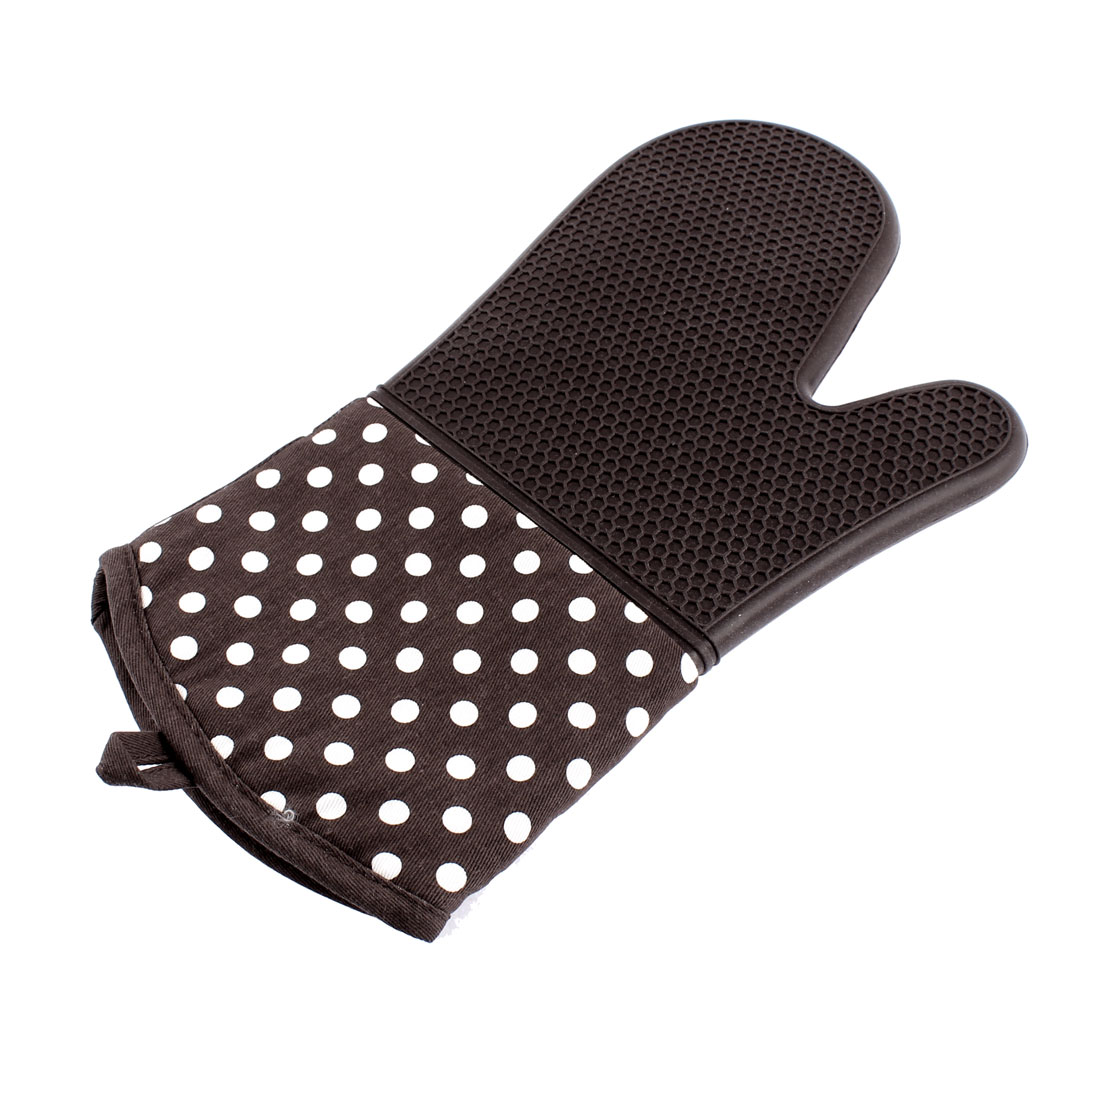 Dots Pattern Non Slip Heat Resistance BBQ Oven Mitt Glove Coffee Color